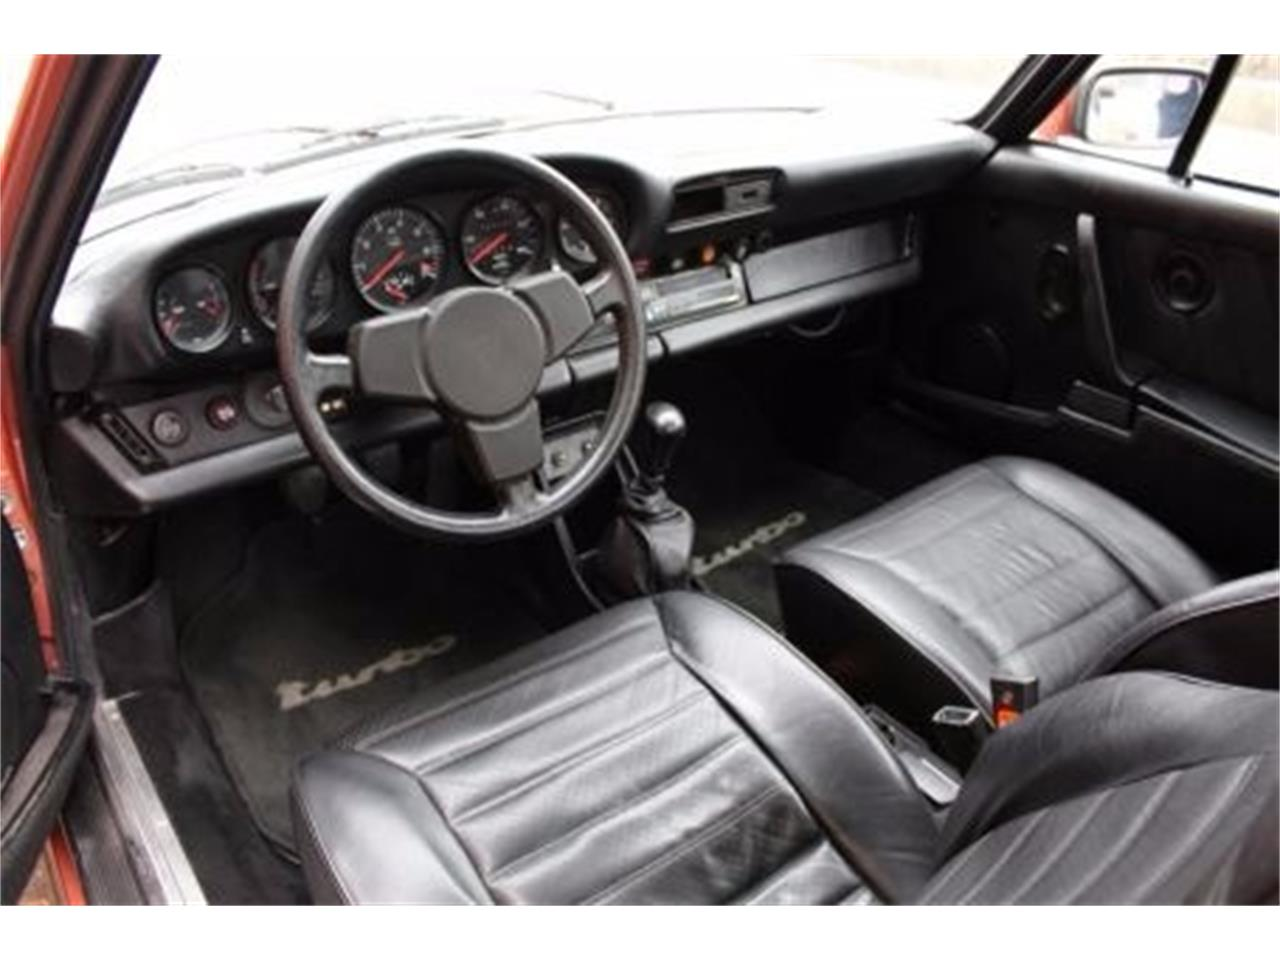 Large Picture of 1979 Porsche 930 located in Astoria New York Auction Vehicle Offered by Gullwing Motor Cars - JH0E